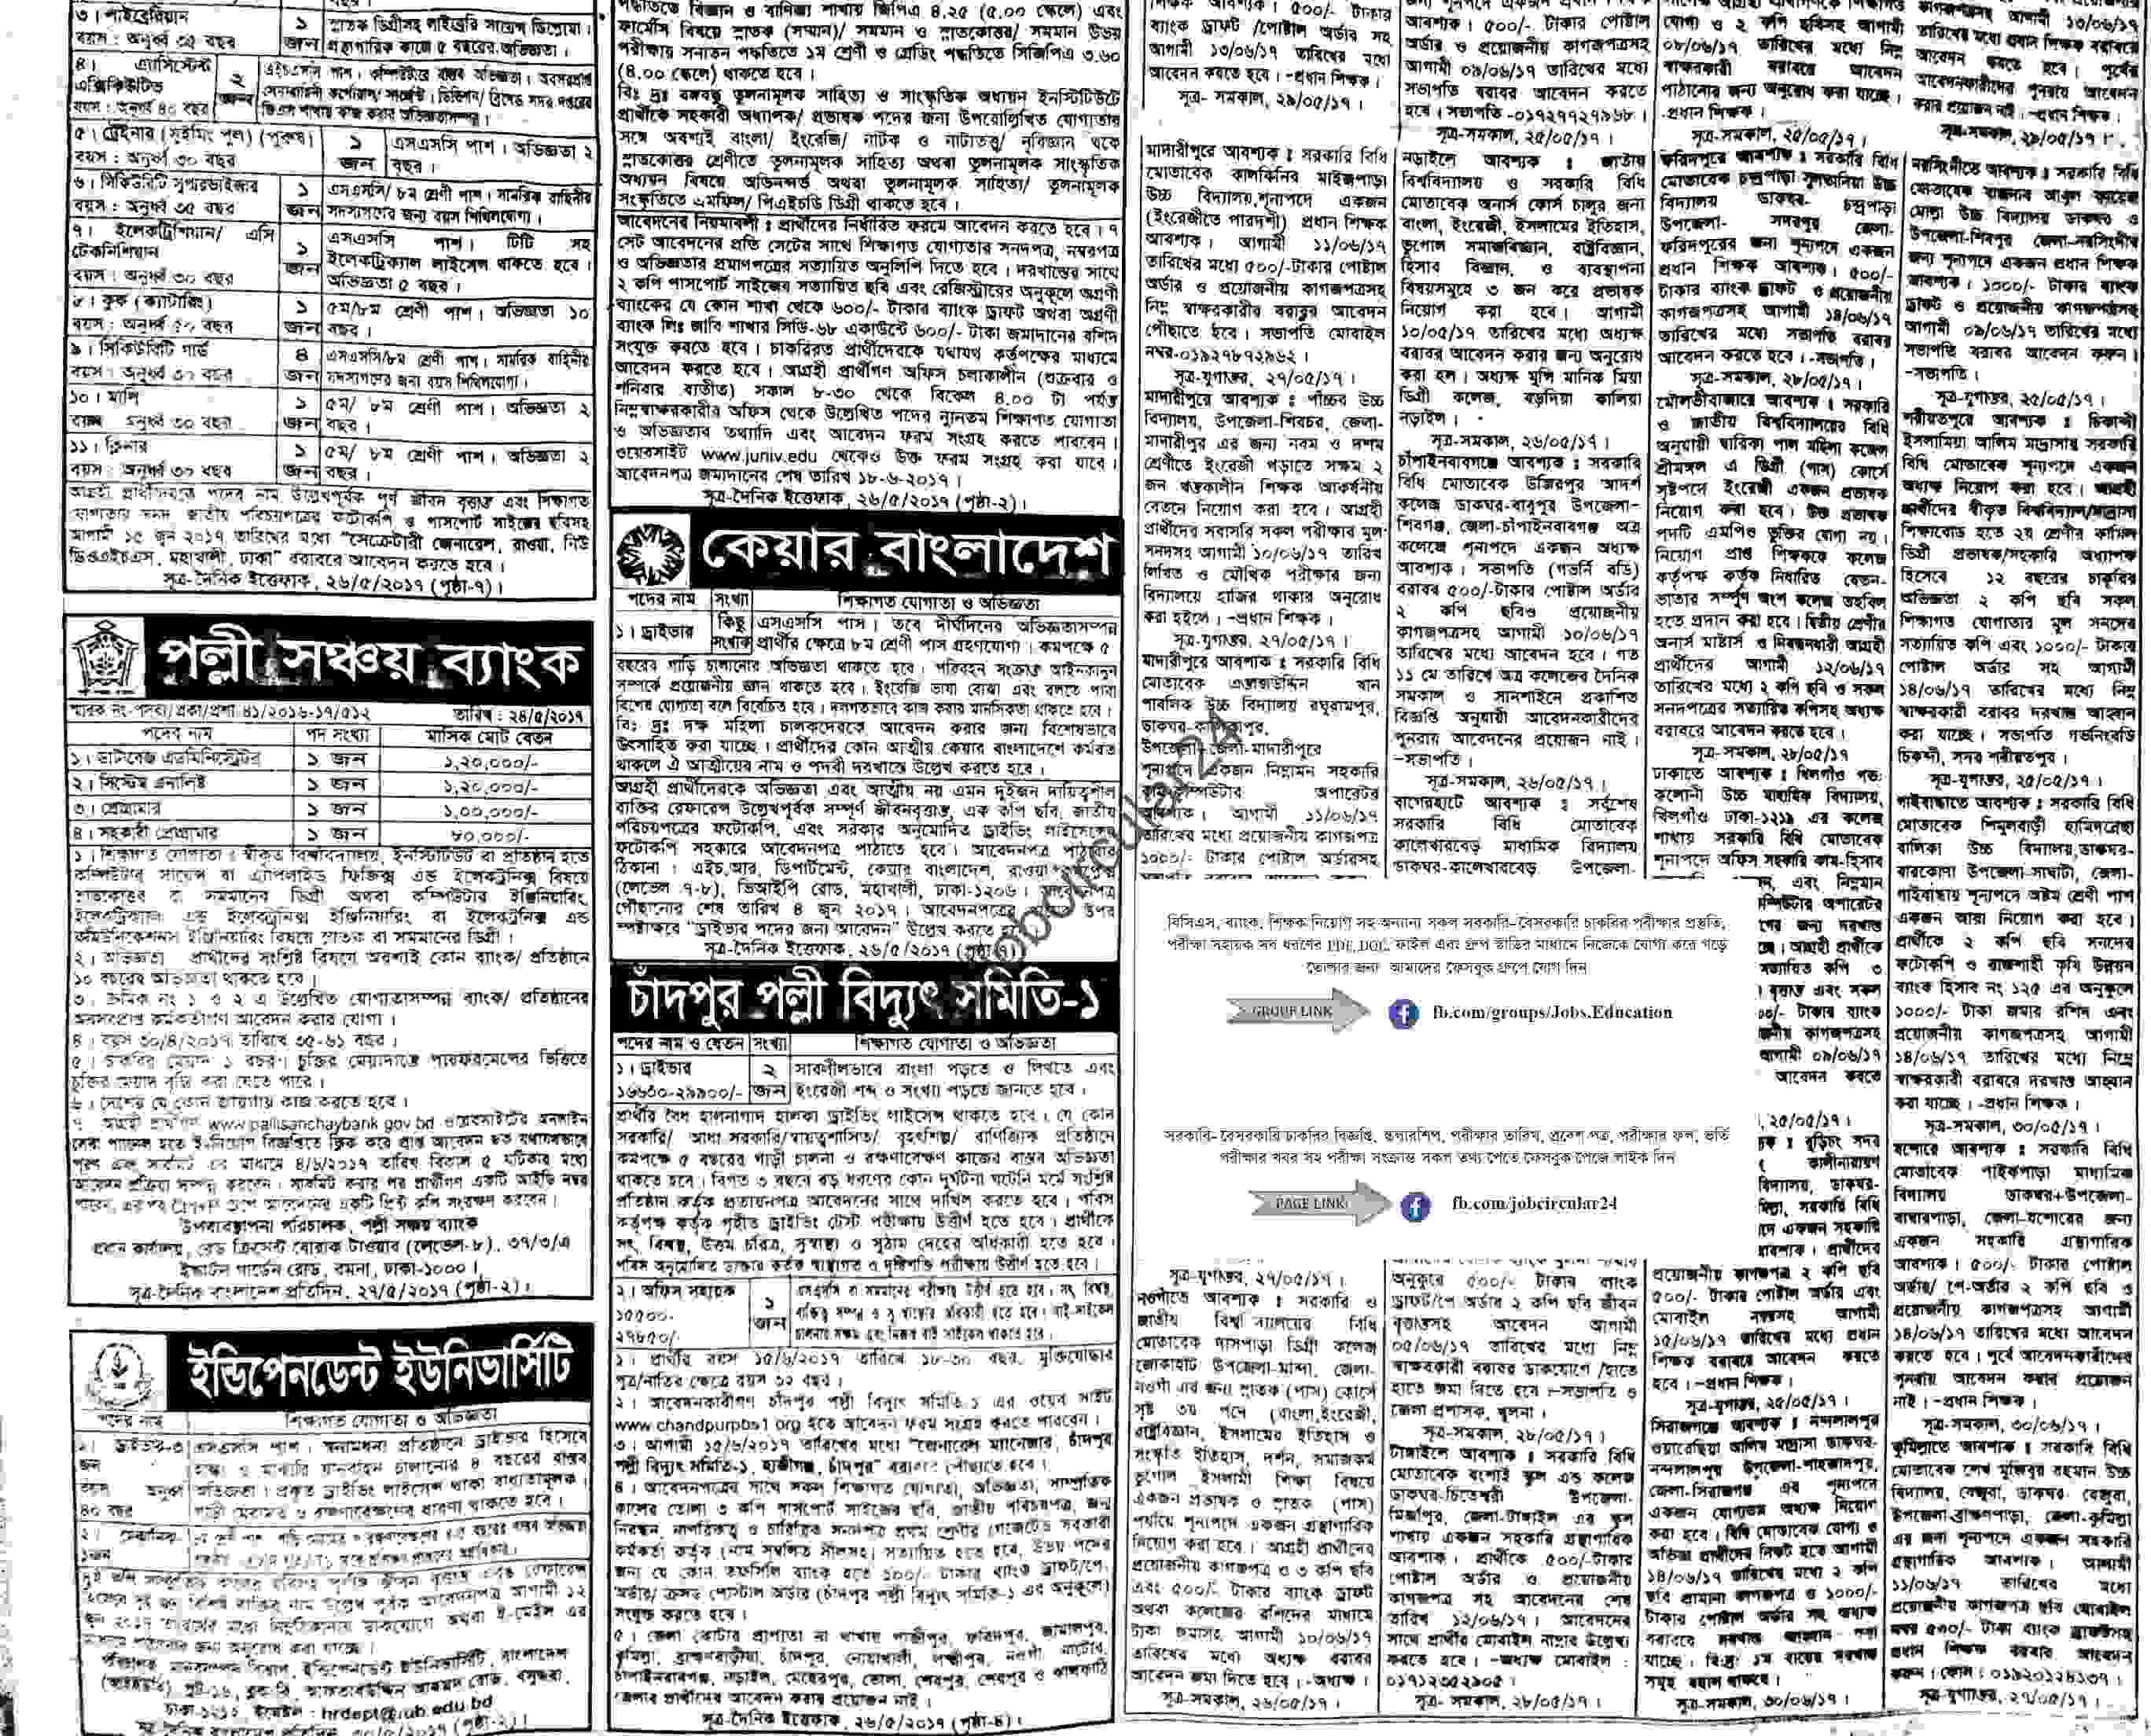 Weekly Job Newspaper 2 Jun 2017